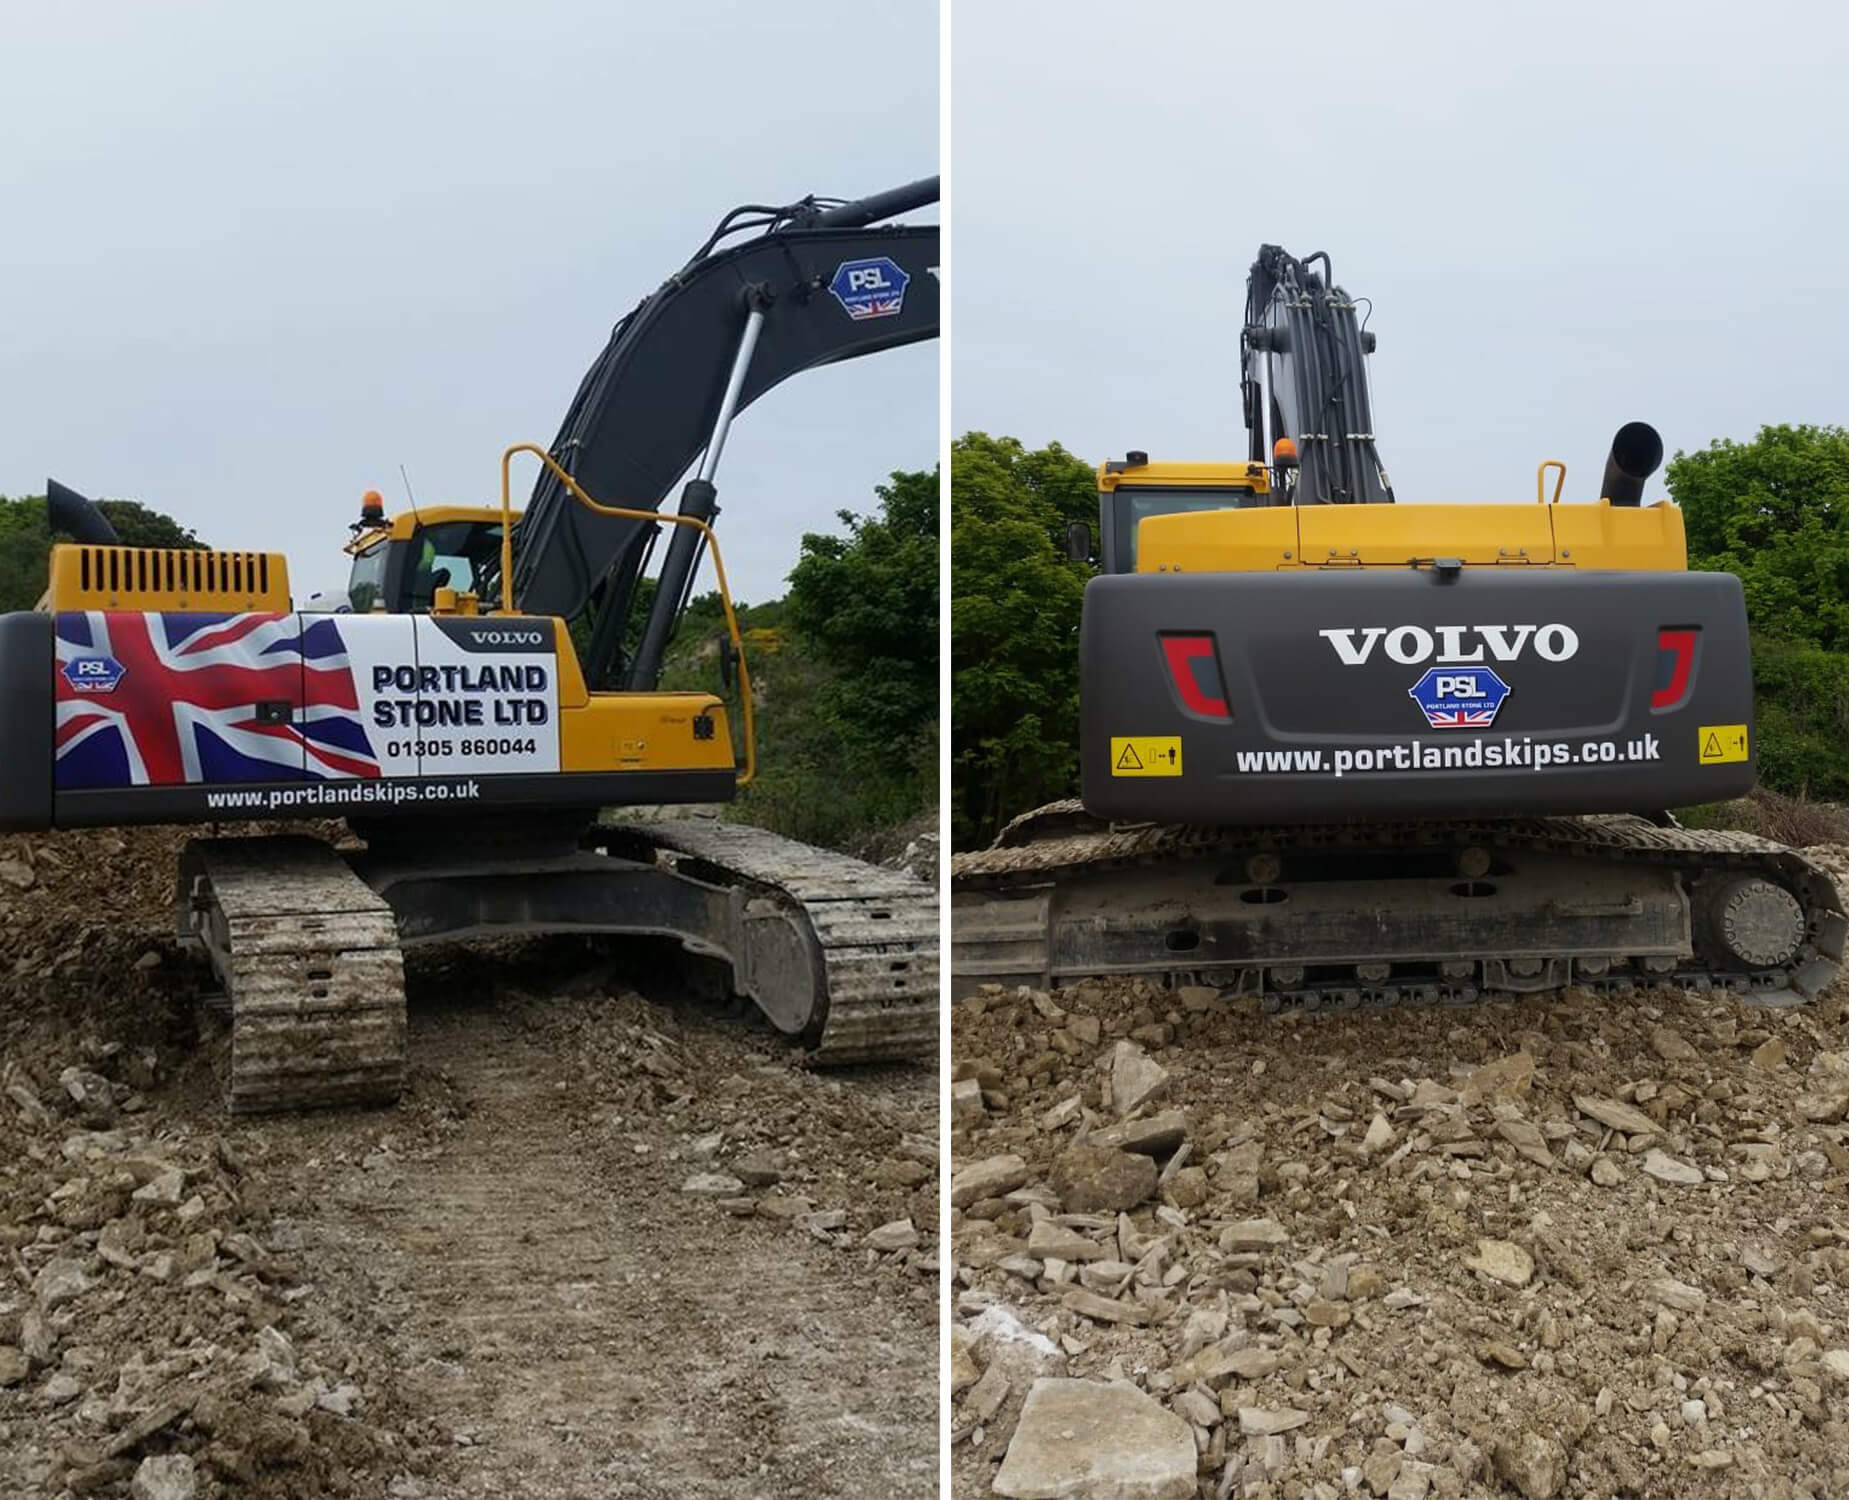 Portland Stone Add New Volvo EC300DL Excavator To The Company